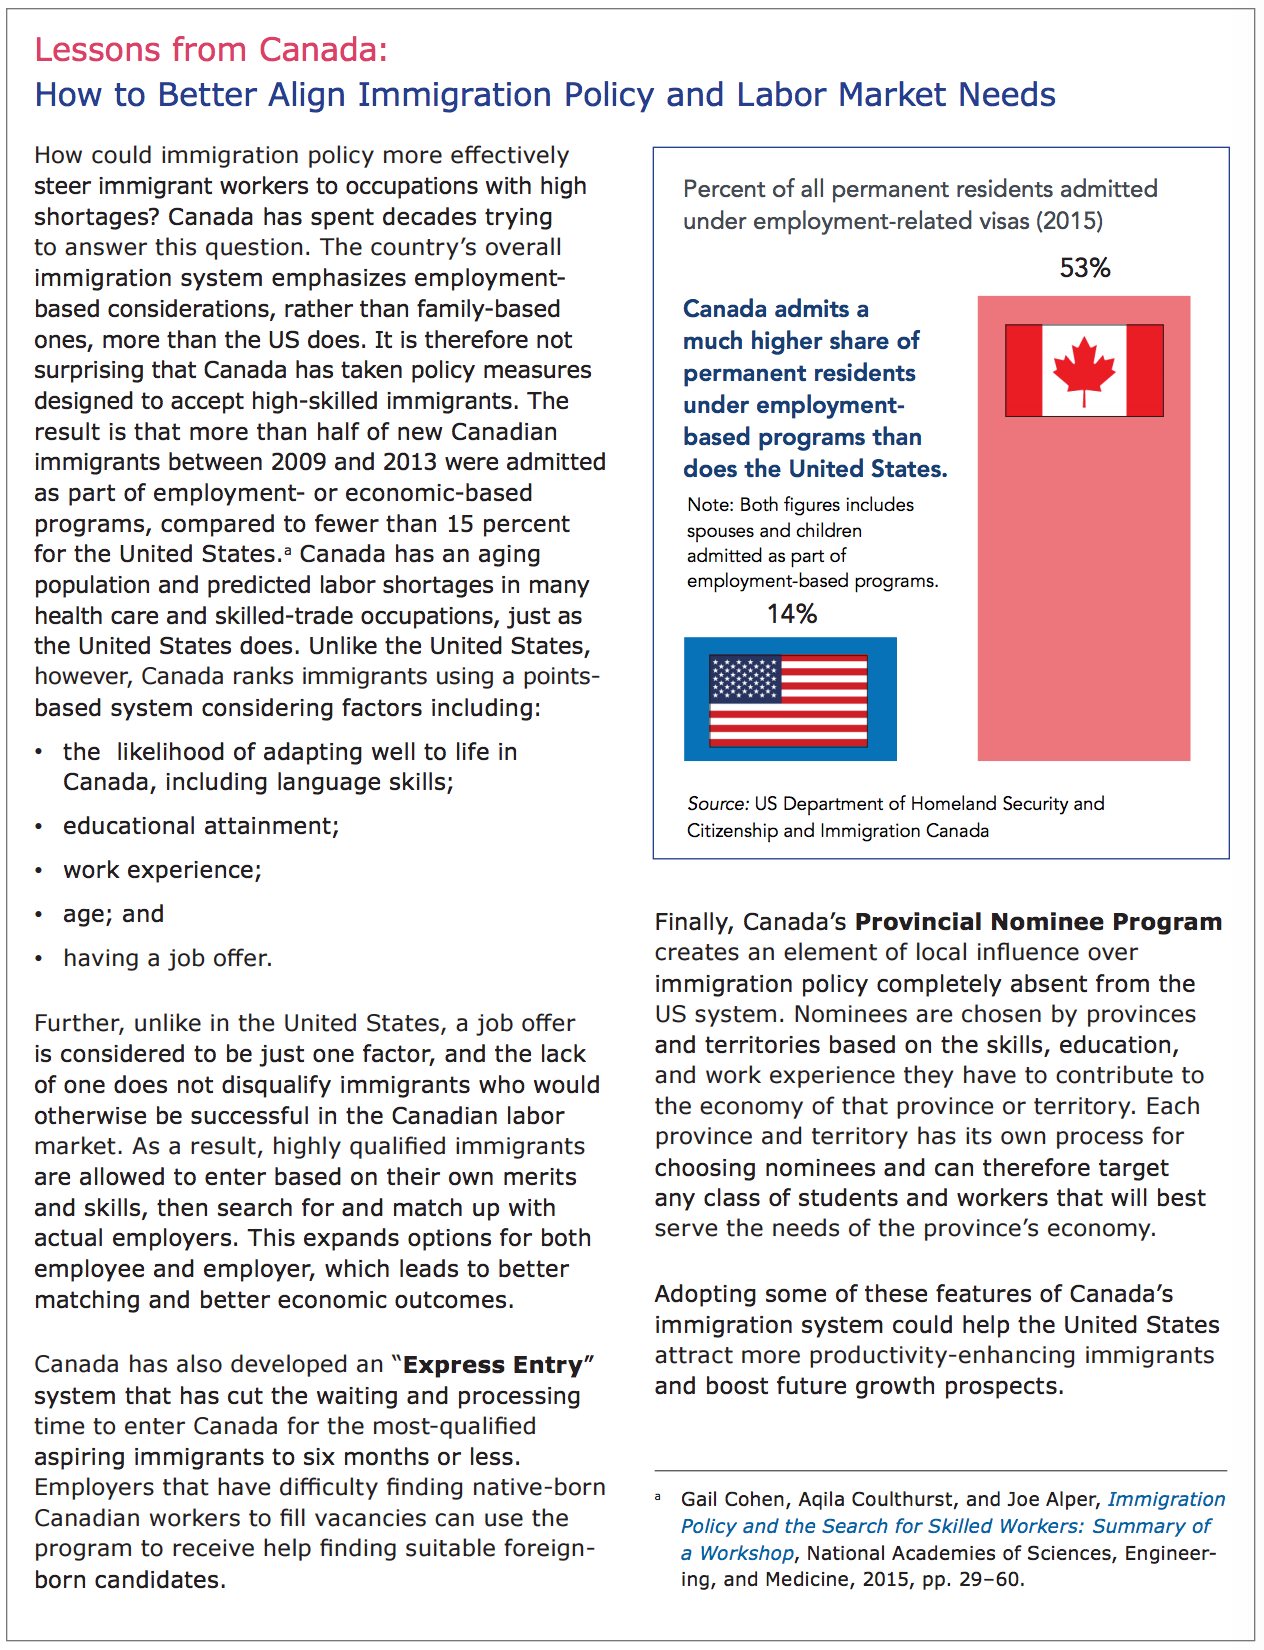 Immigration Policy That Works | Committee for Economic